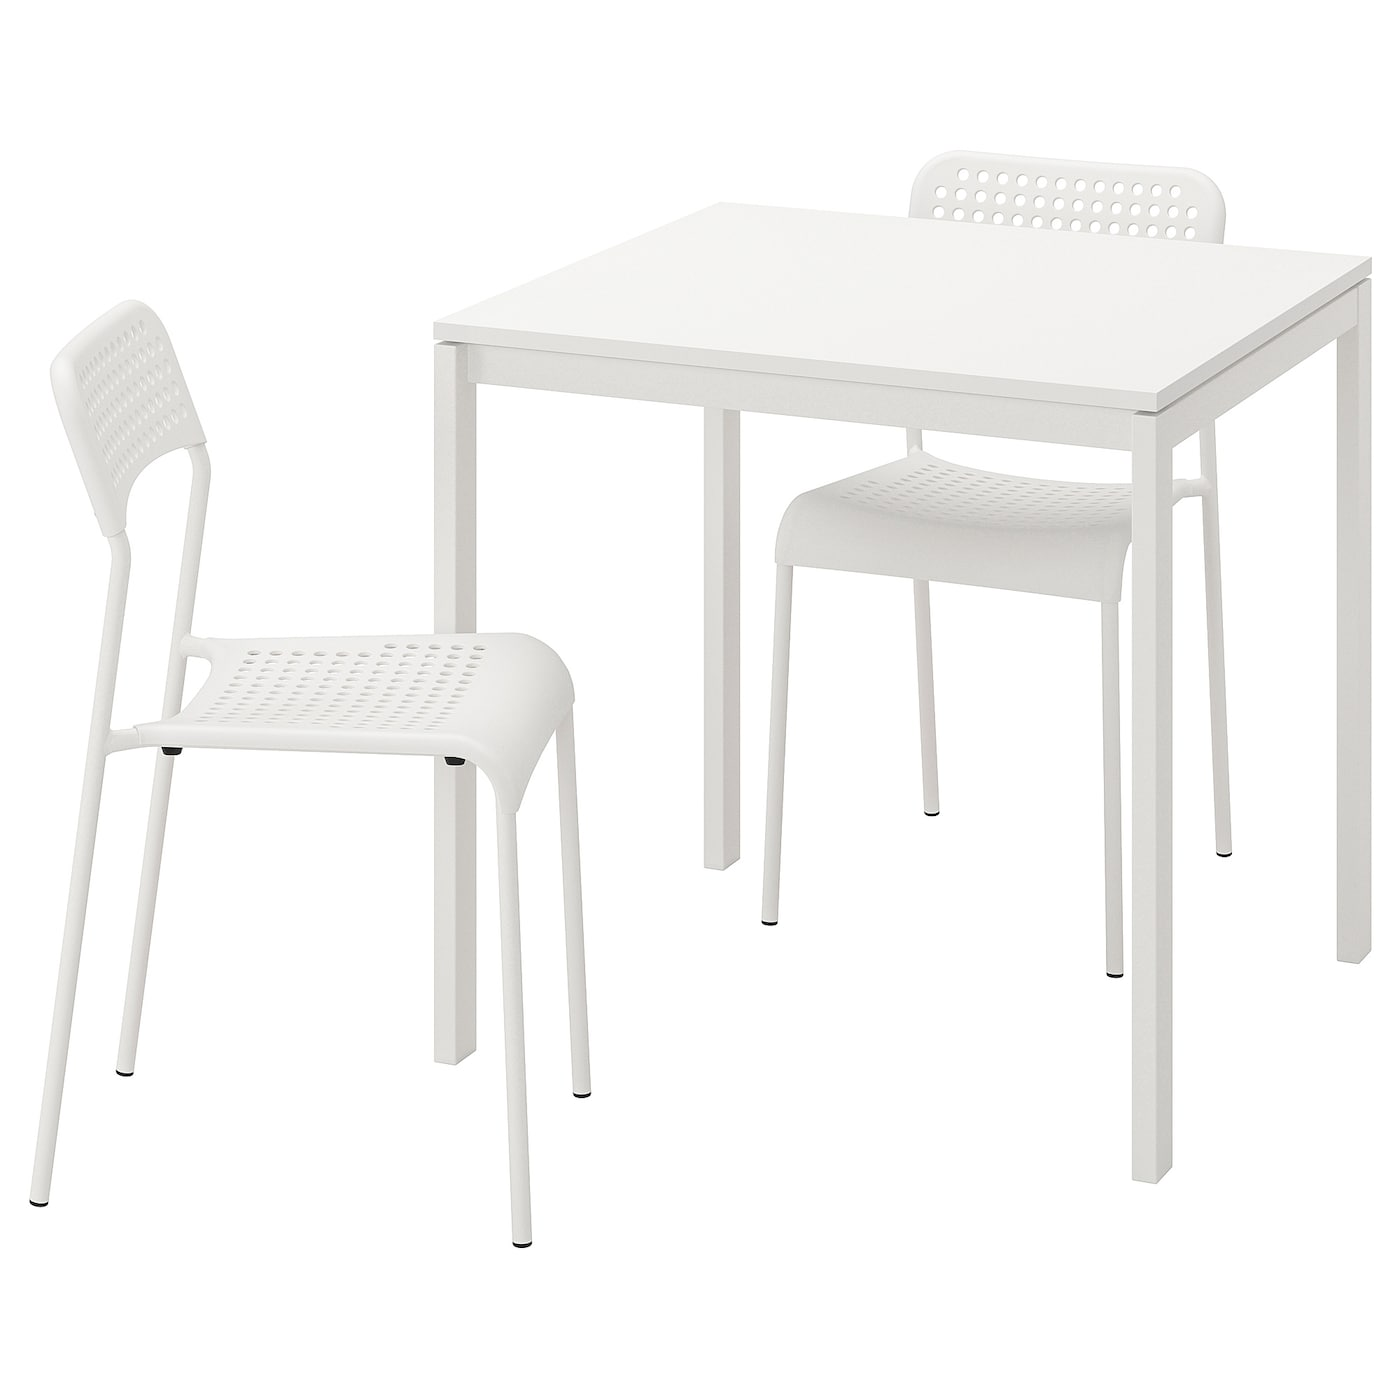 Melltorp Adde Table And 2 Chairs White Ikea